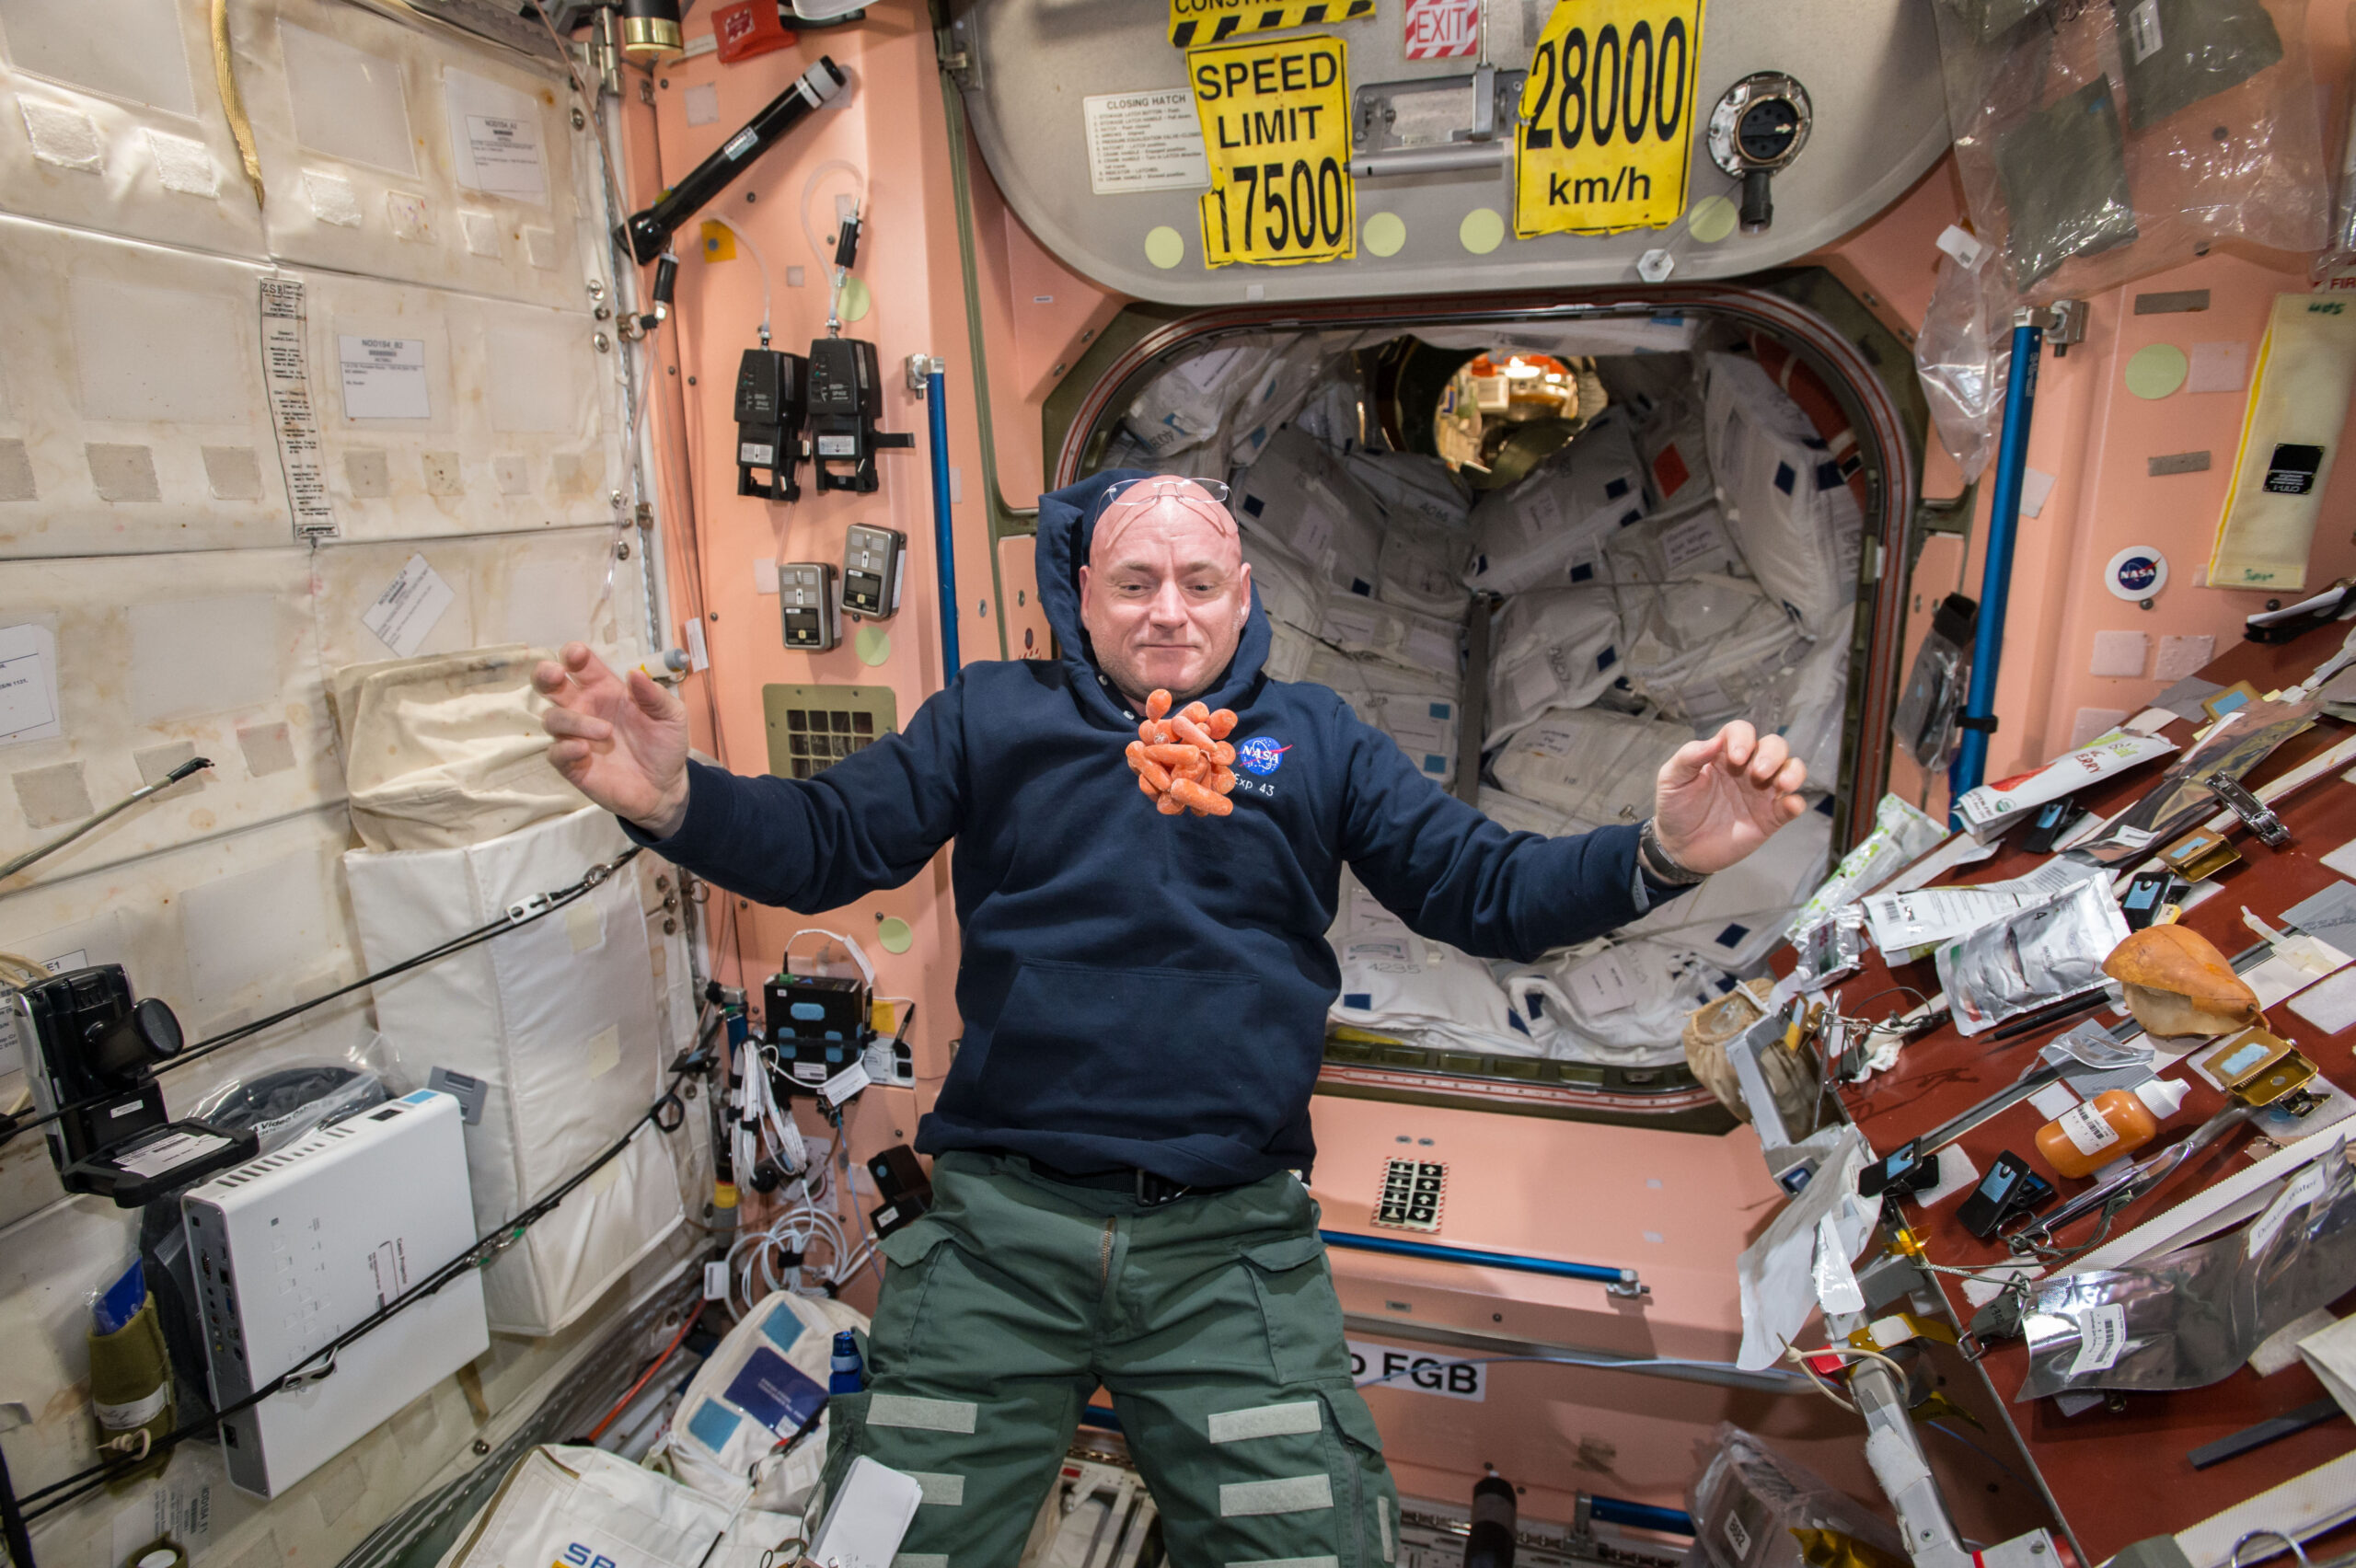 Scott Kelly watches a bunch of fresh carrots